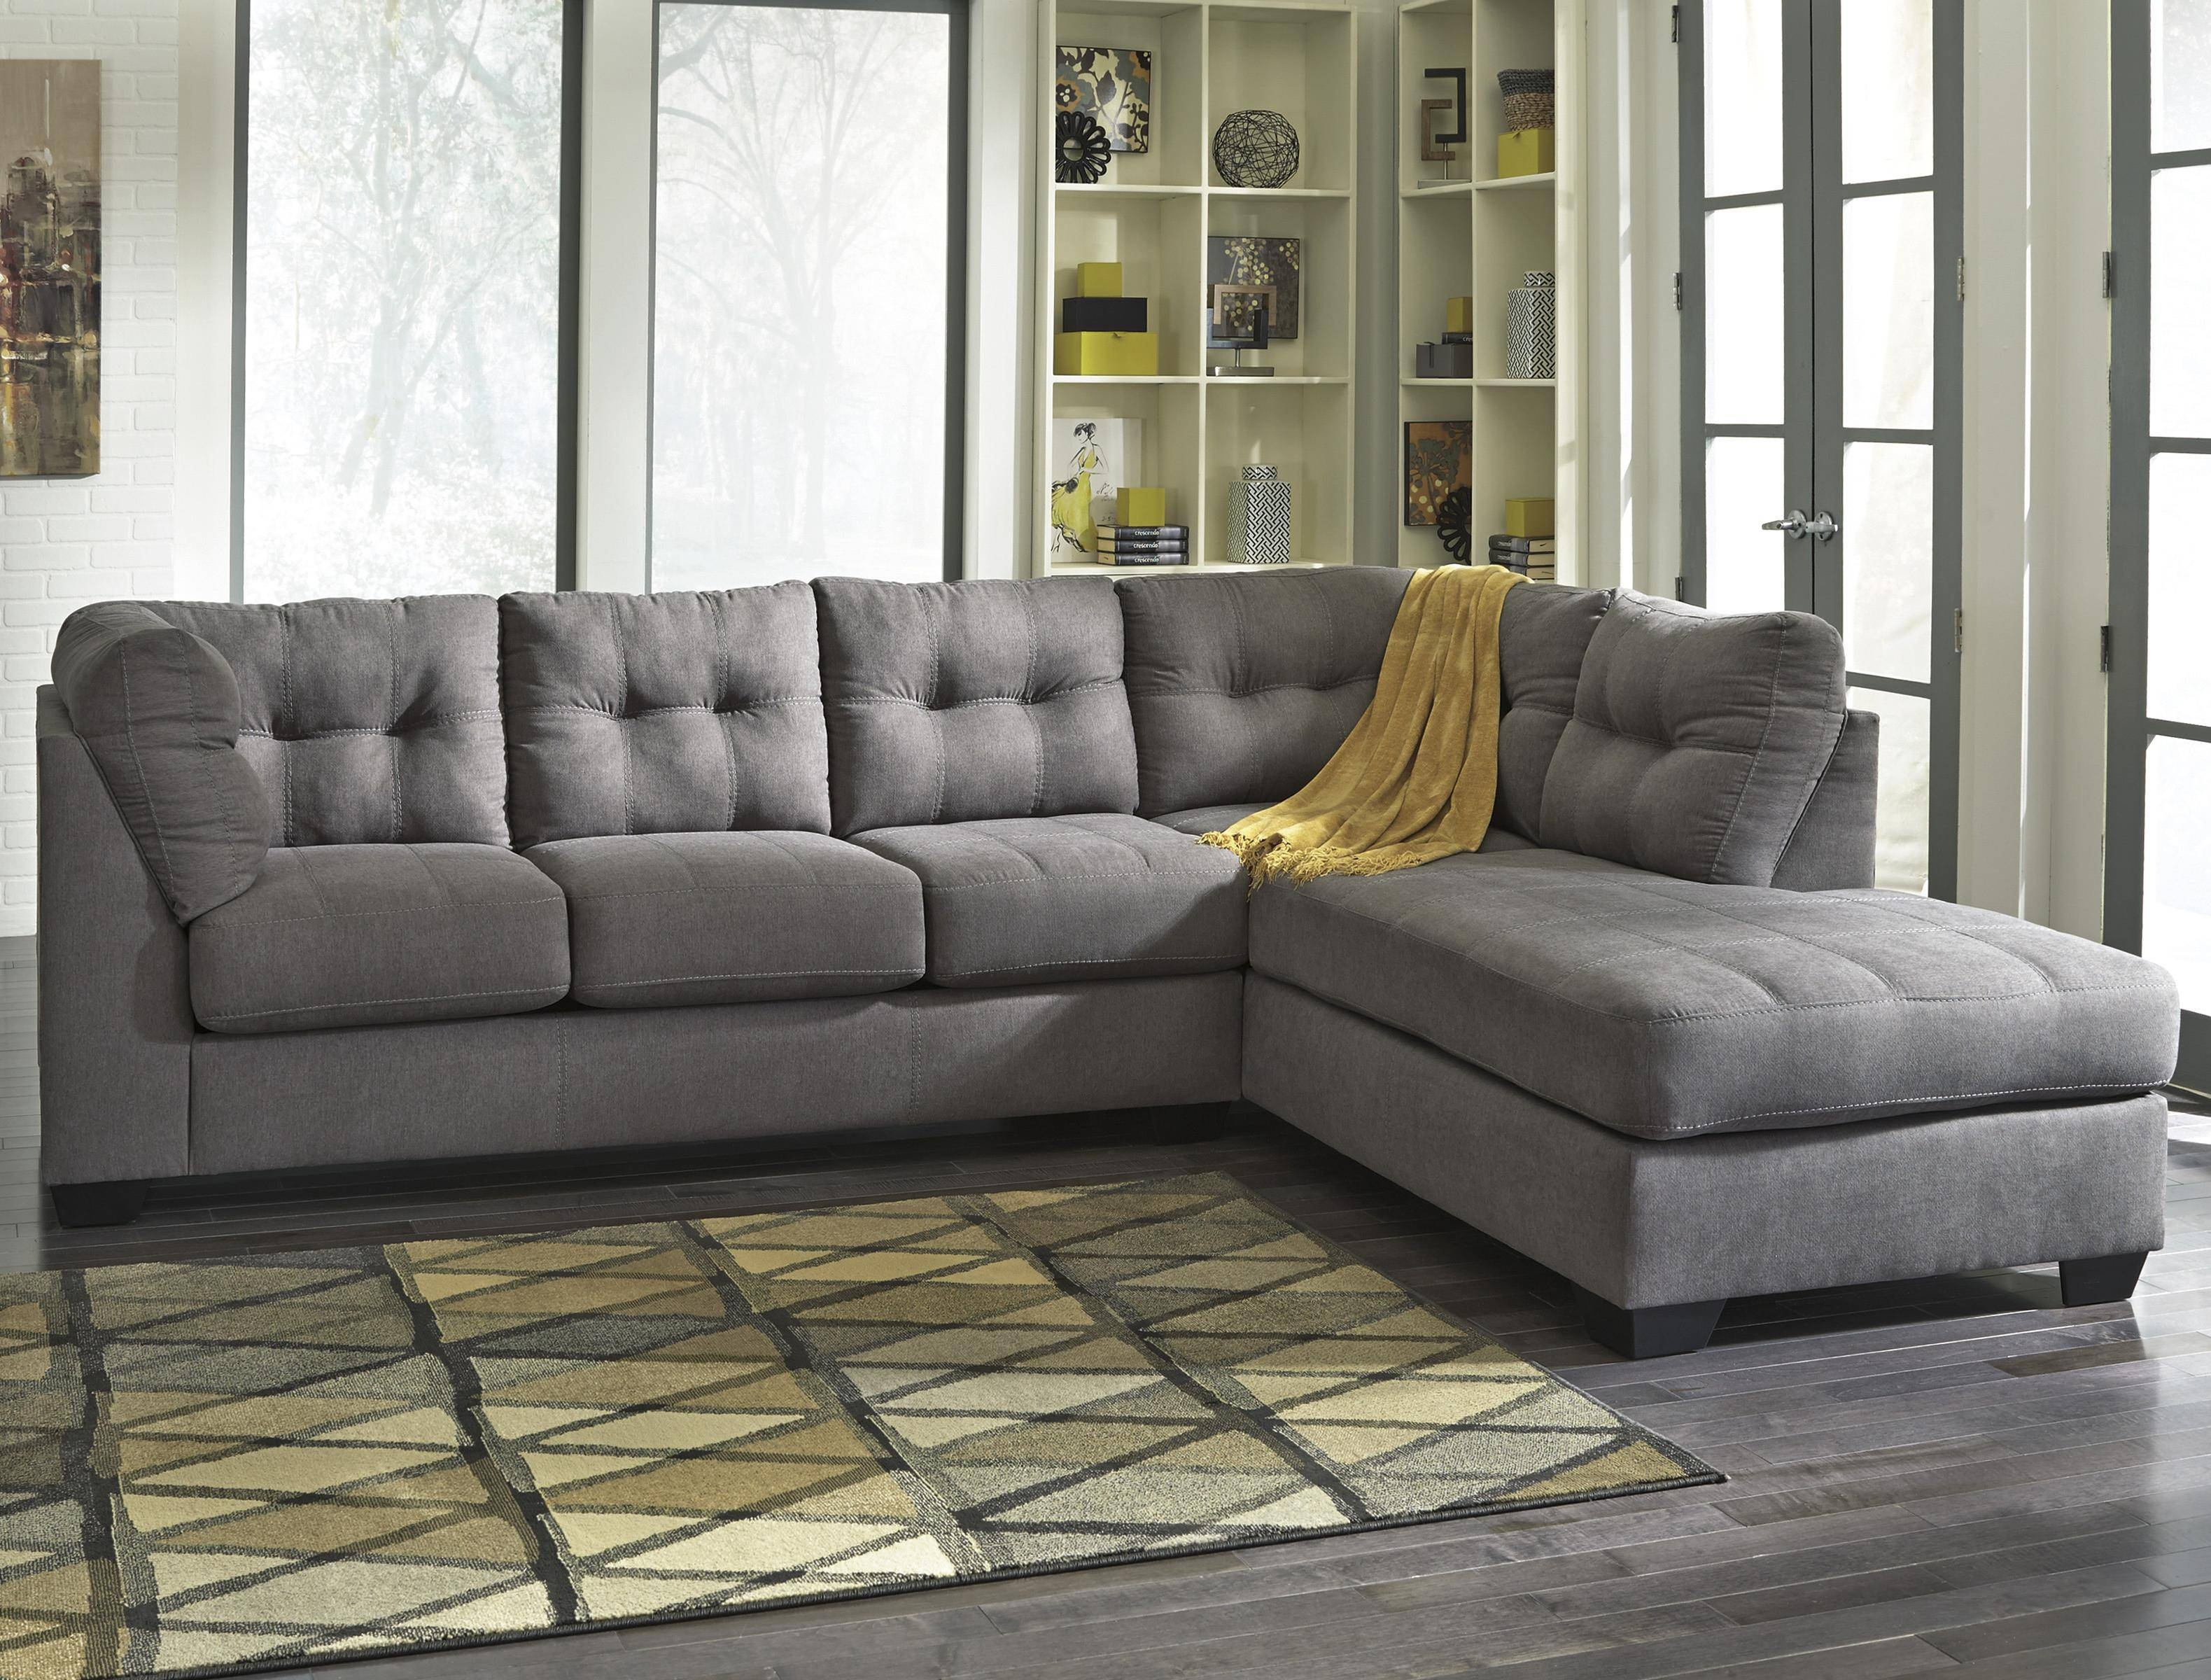 Benchcraft Maier – Charcoal 2 Piece Sectional With Right Chaise In Sectional Sofa With 2 Chaises (View 10 of 30)